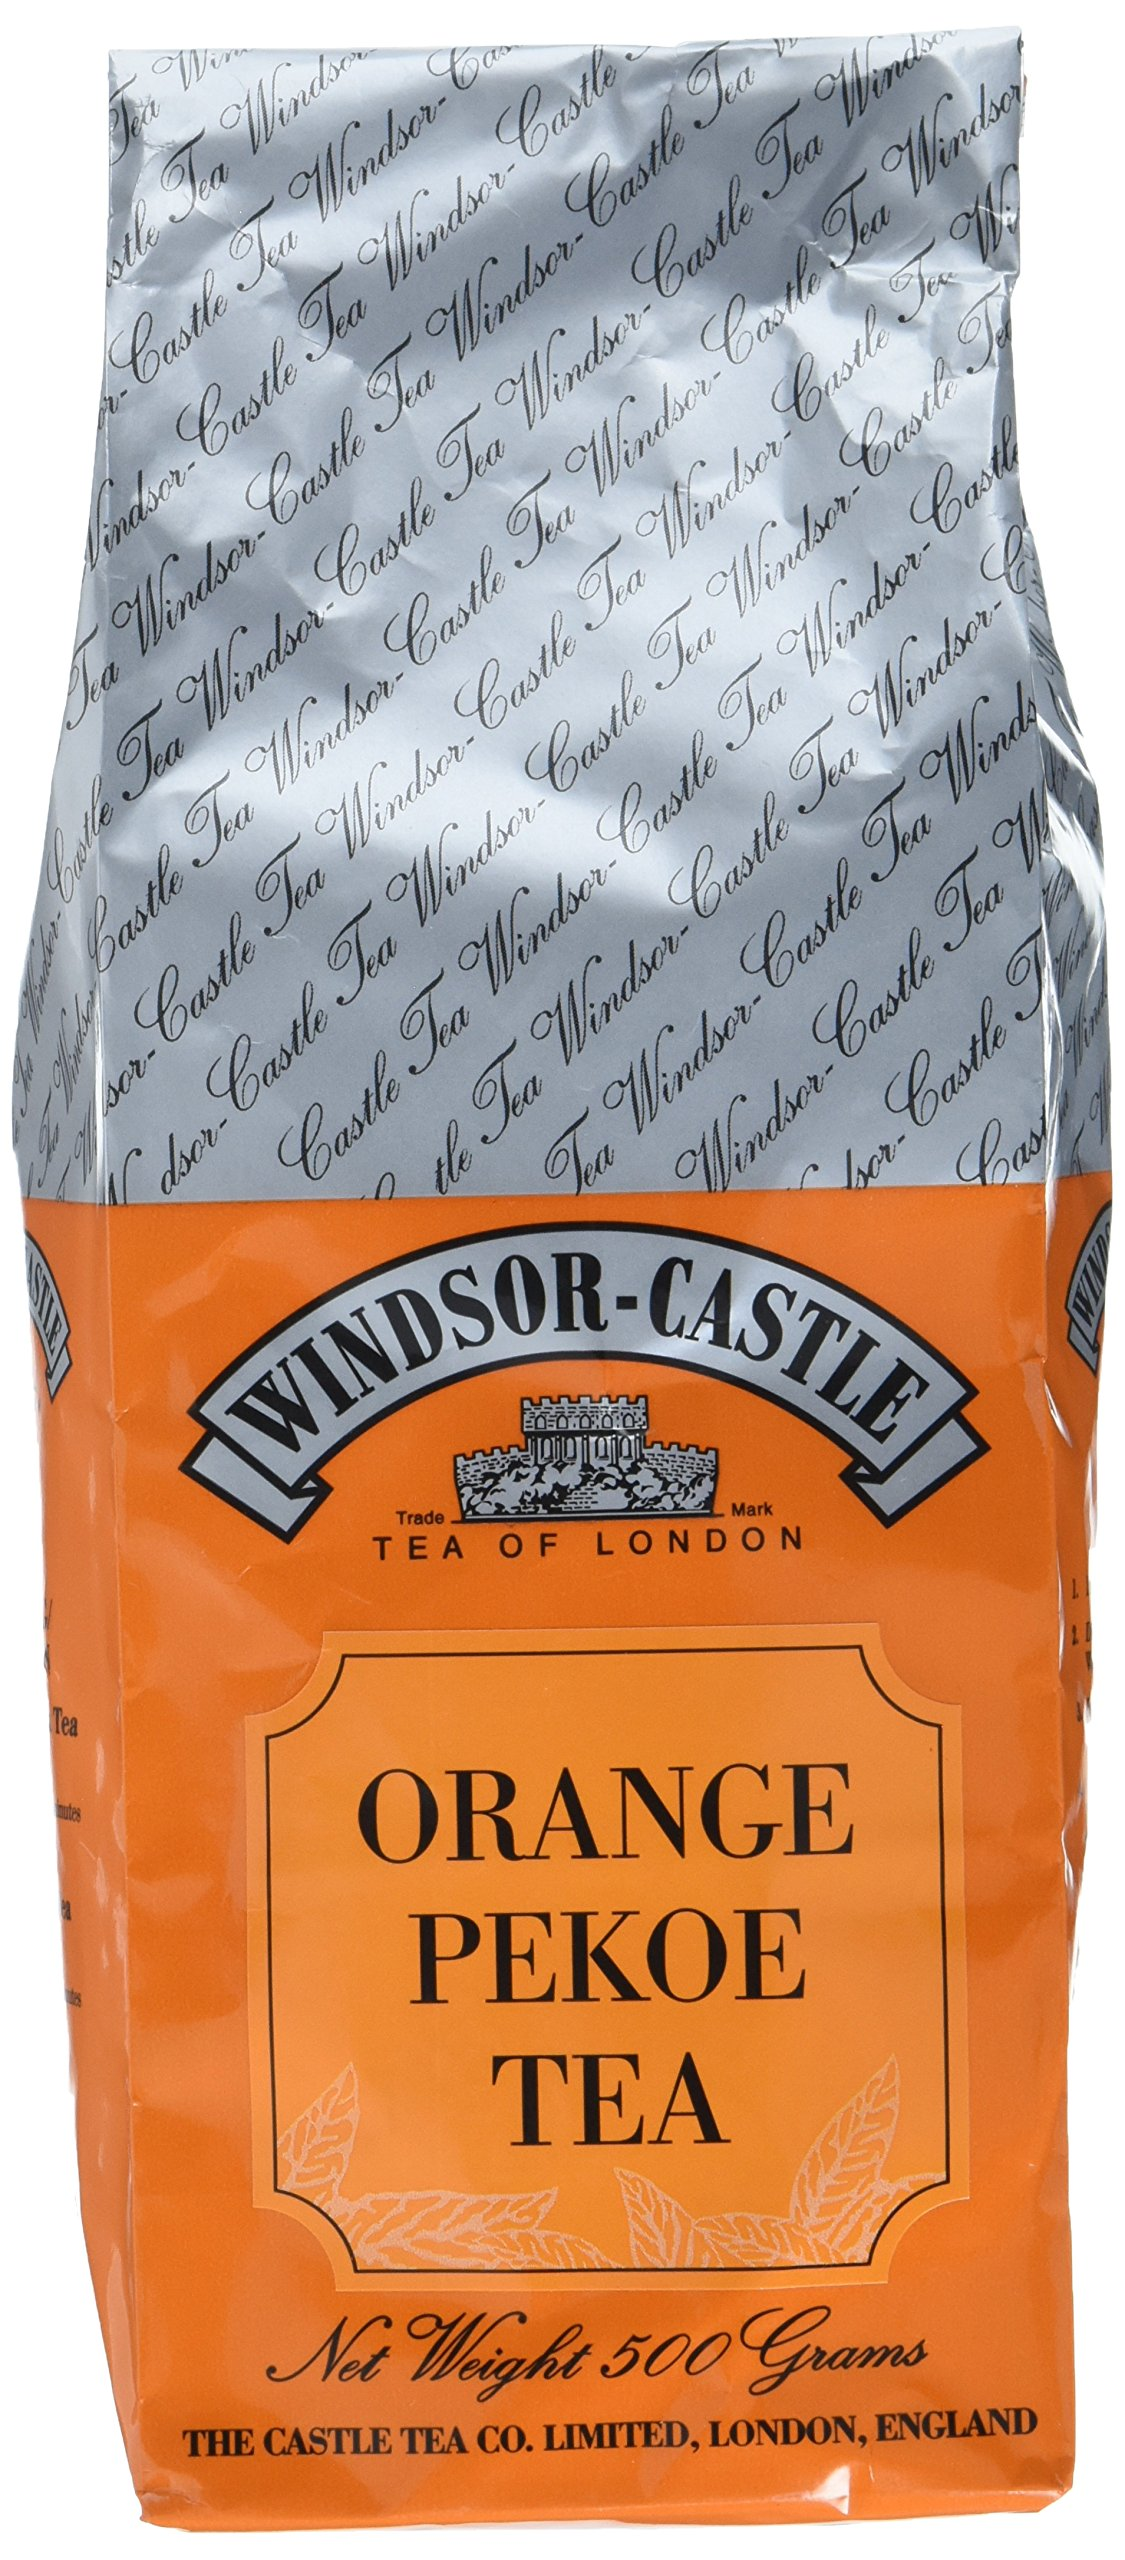 Windsor-Castle-Orange-Pekoe-Tea-500-g